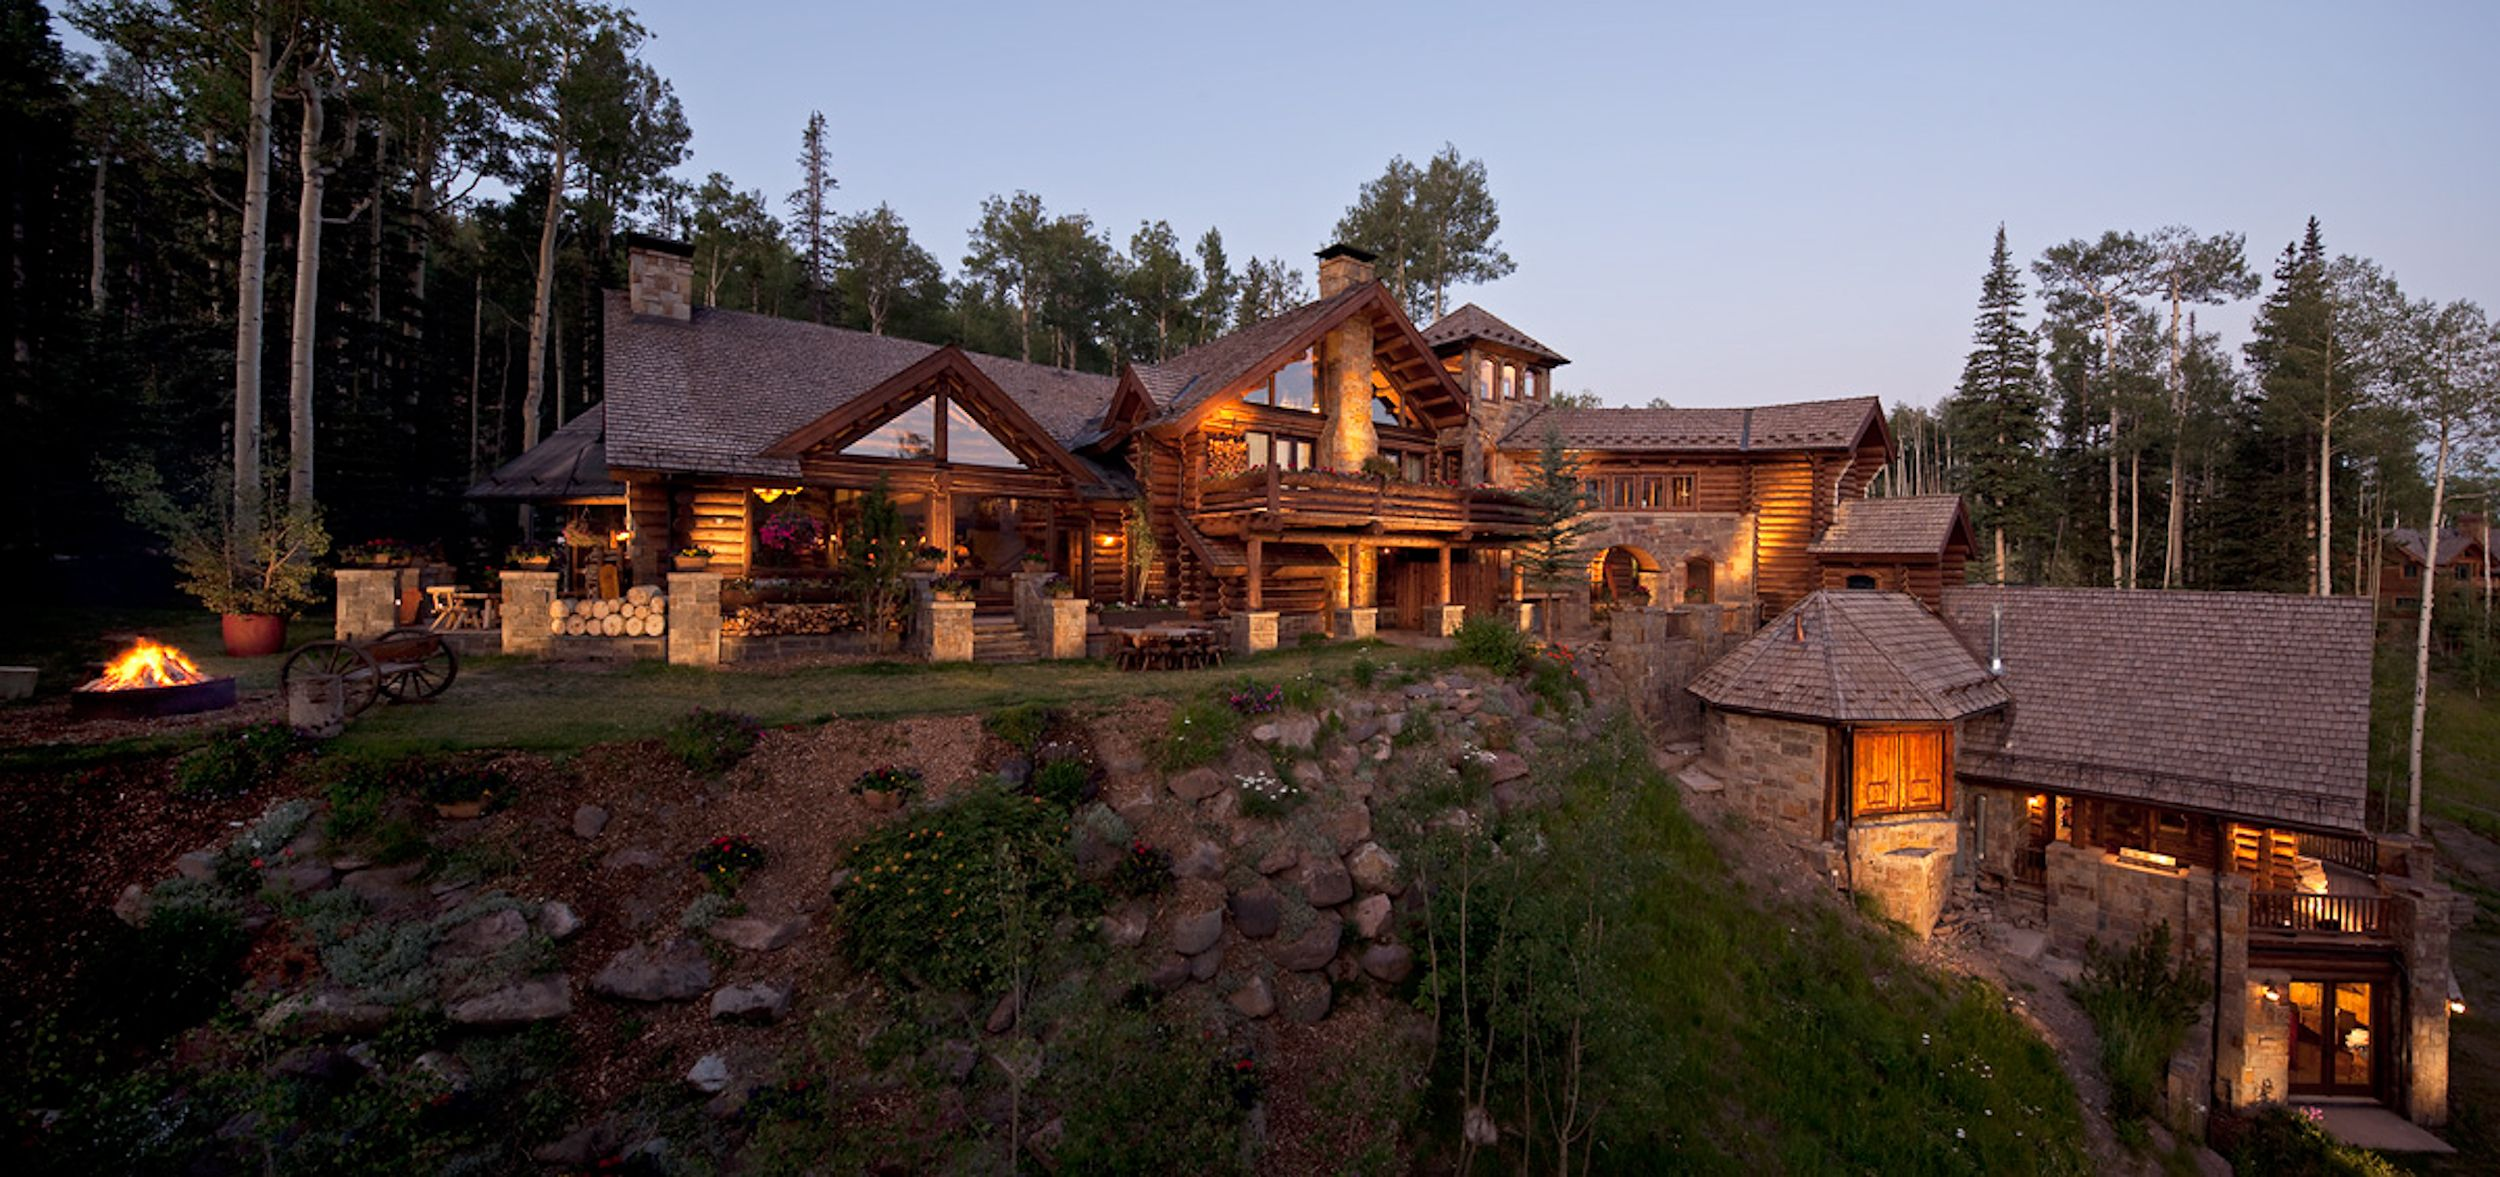 Pics Of Colorado Homes | Castlewood, Telluride, Rentals, Luxury, Homes, For  Rent, Mtn Village .